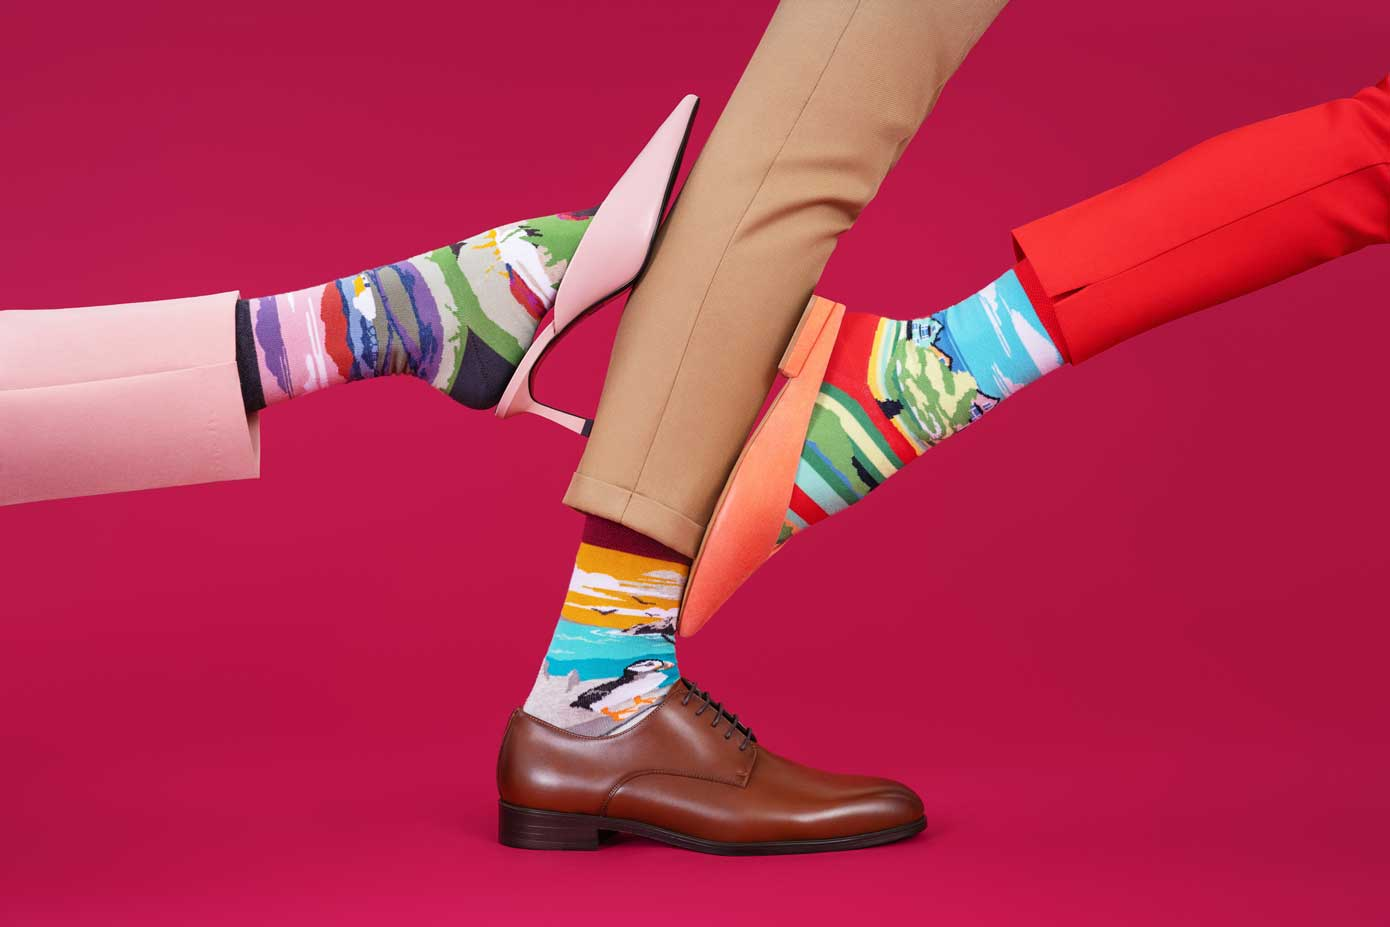 Jump Feet First Into Your Staycation With Irish Landmark Socks